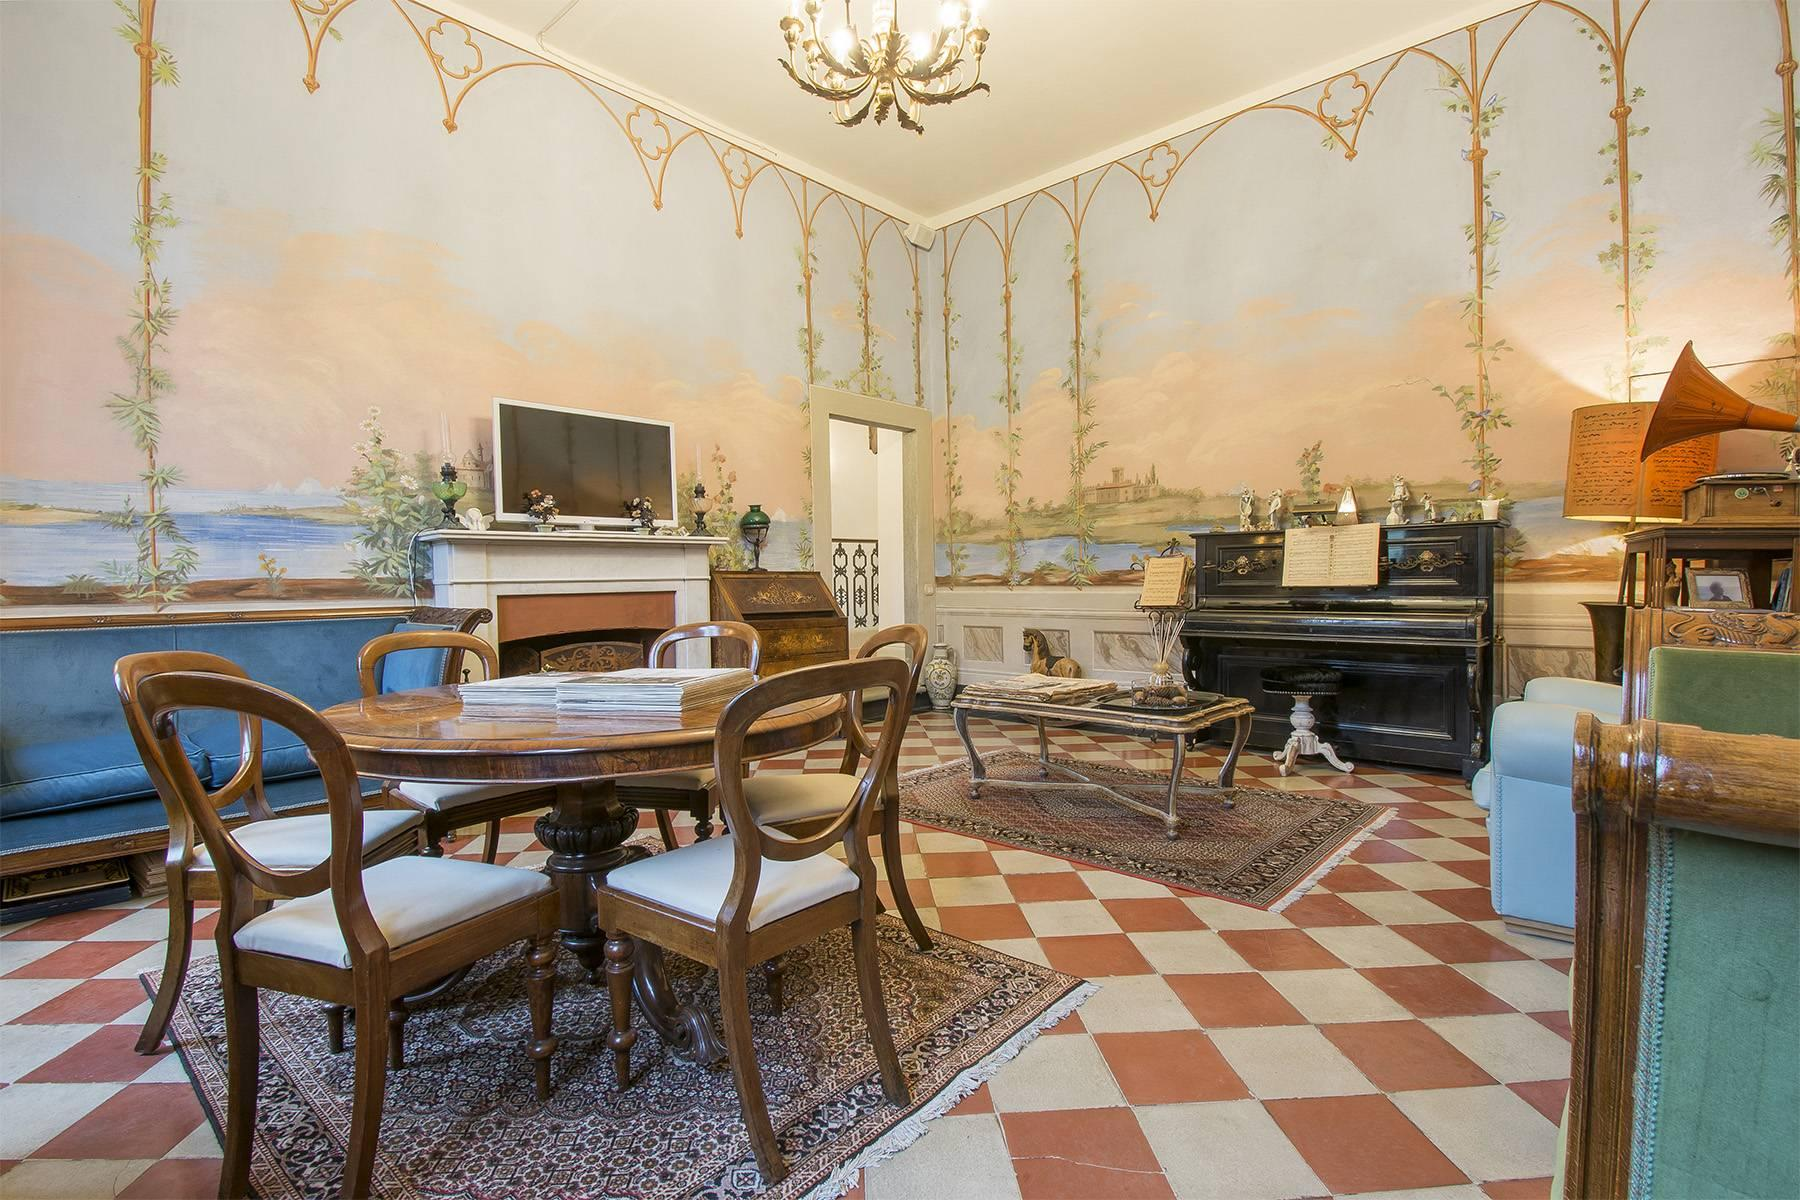 Exquisite apartment within a historic villa - 2